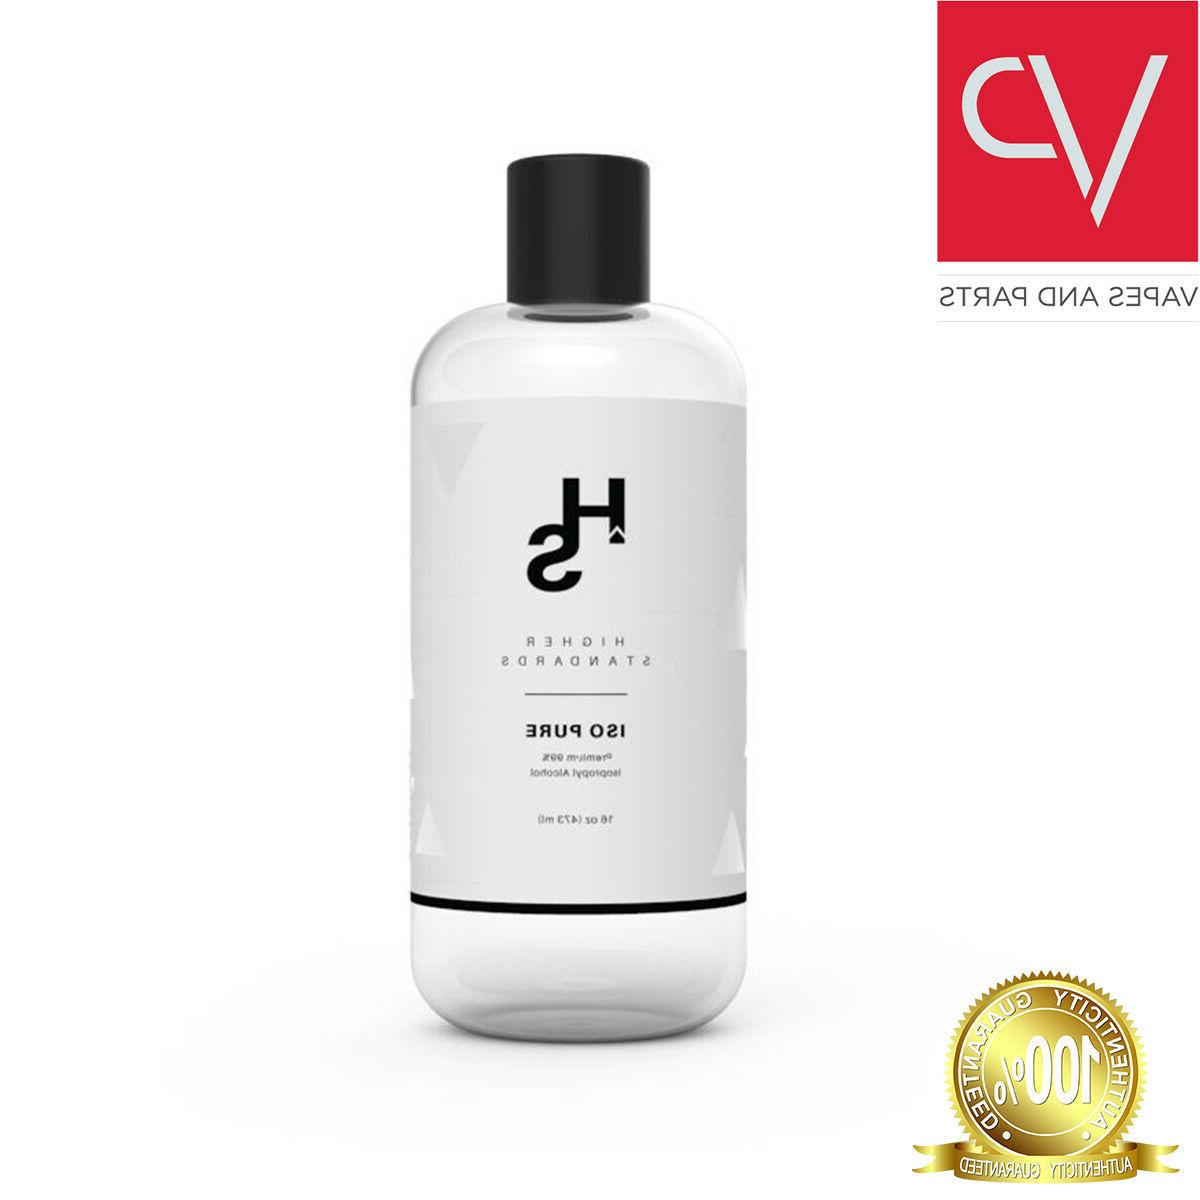 99 percent isopropyl alcohol iso pure cleaner